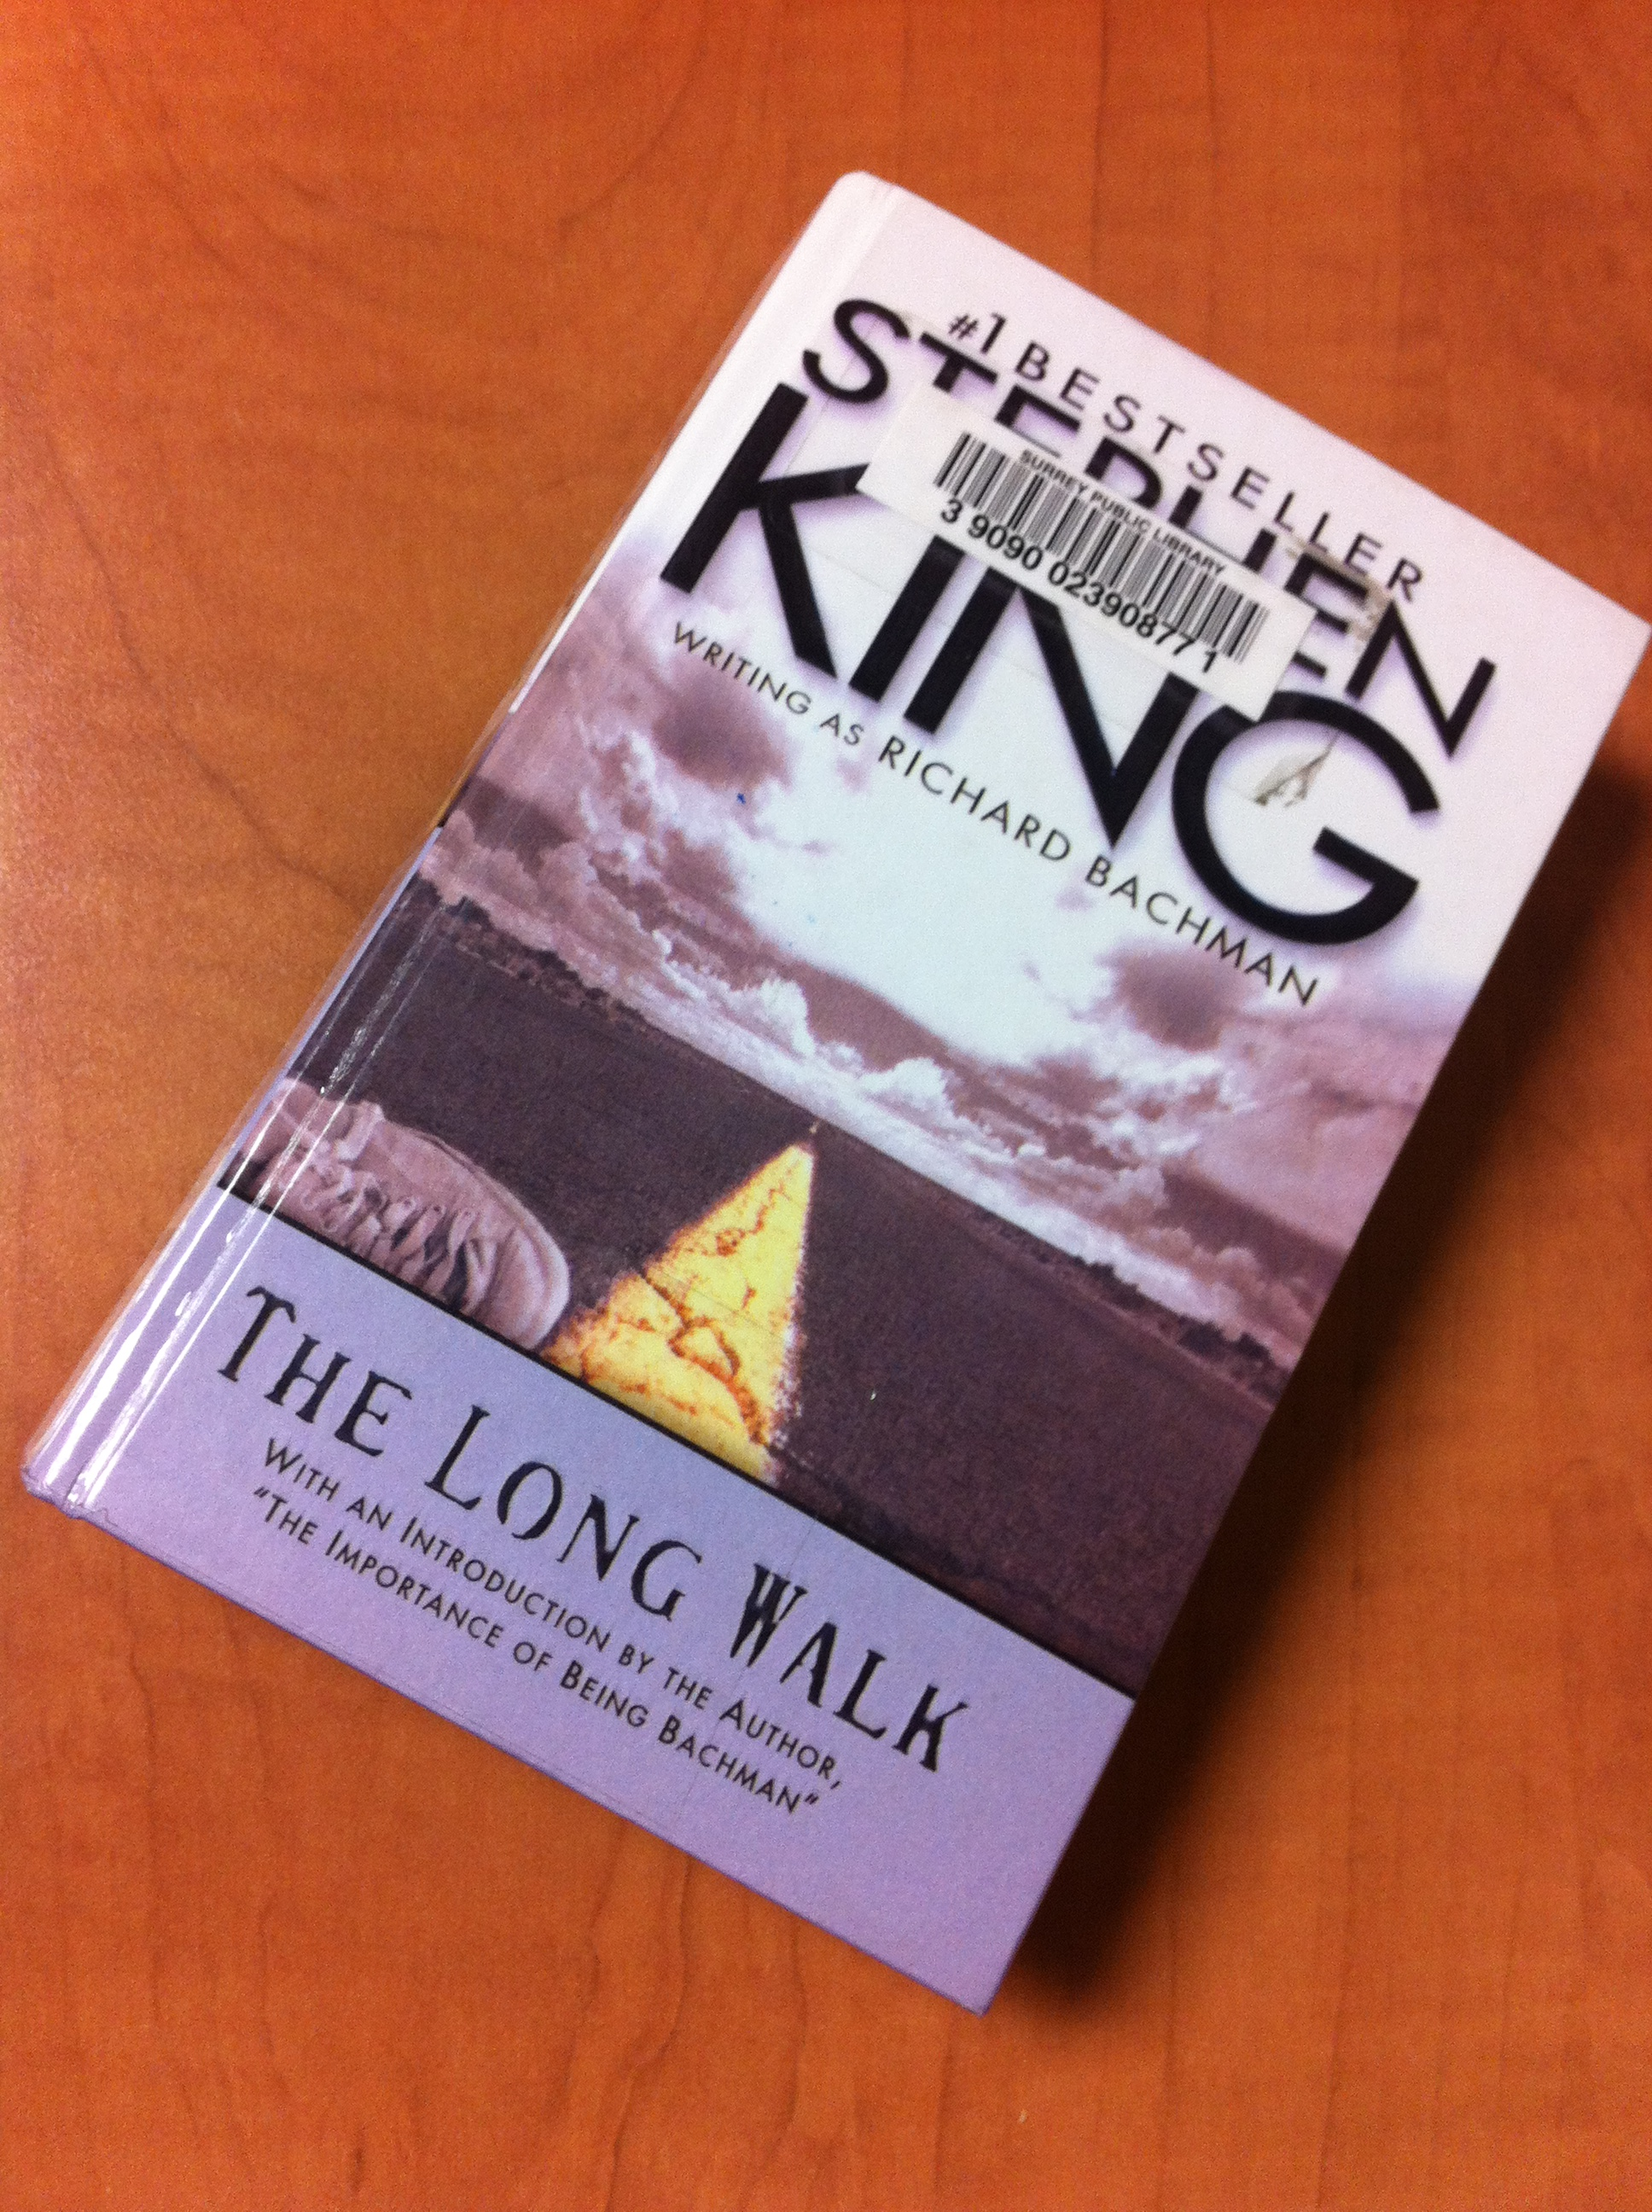 Alli's Cbr4 Review #5: The Long Walk By Stephen King As Richard Bachman